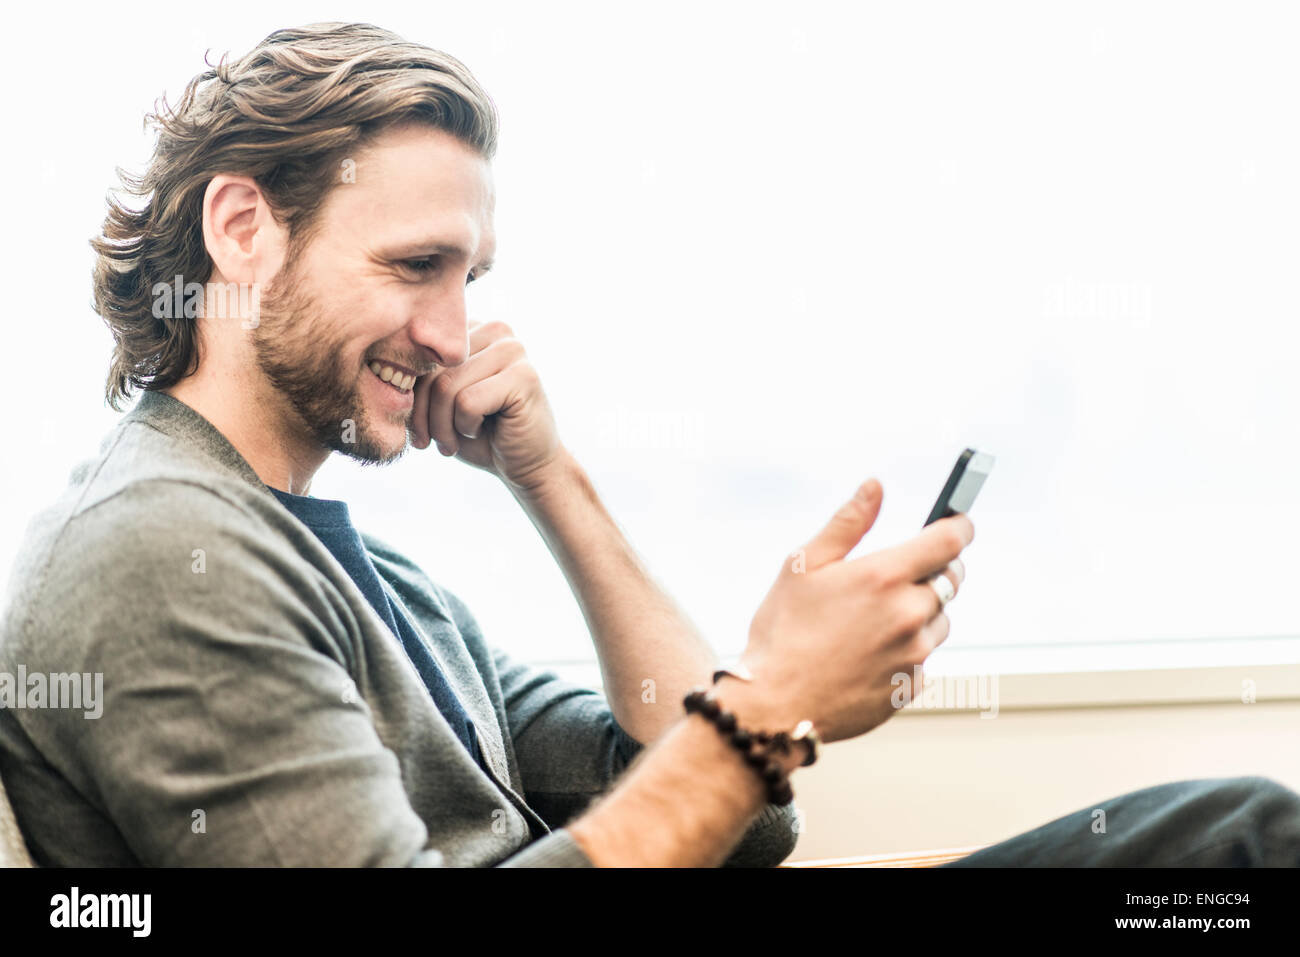 A bearded man sitting smiling and checking his phone. - Stock Image